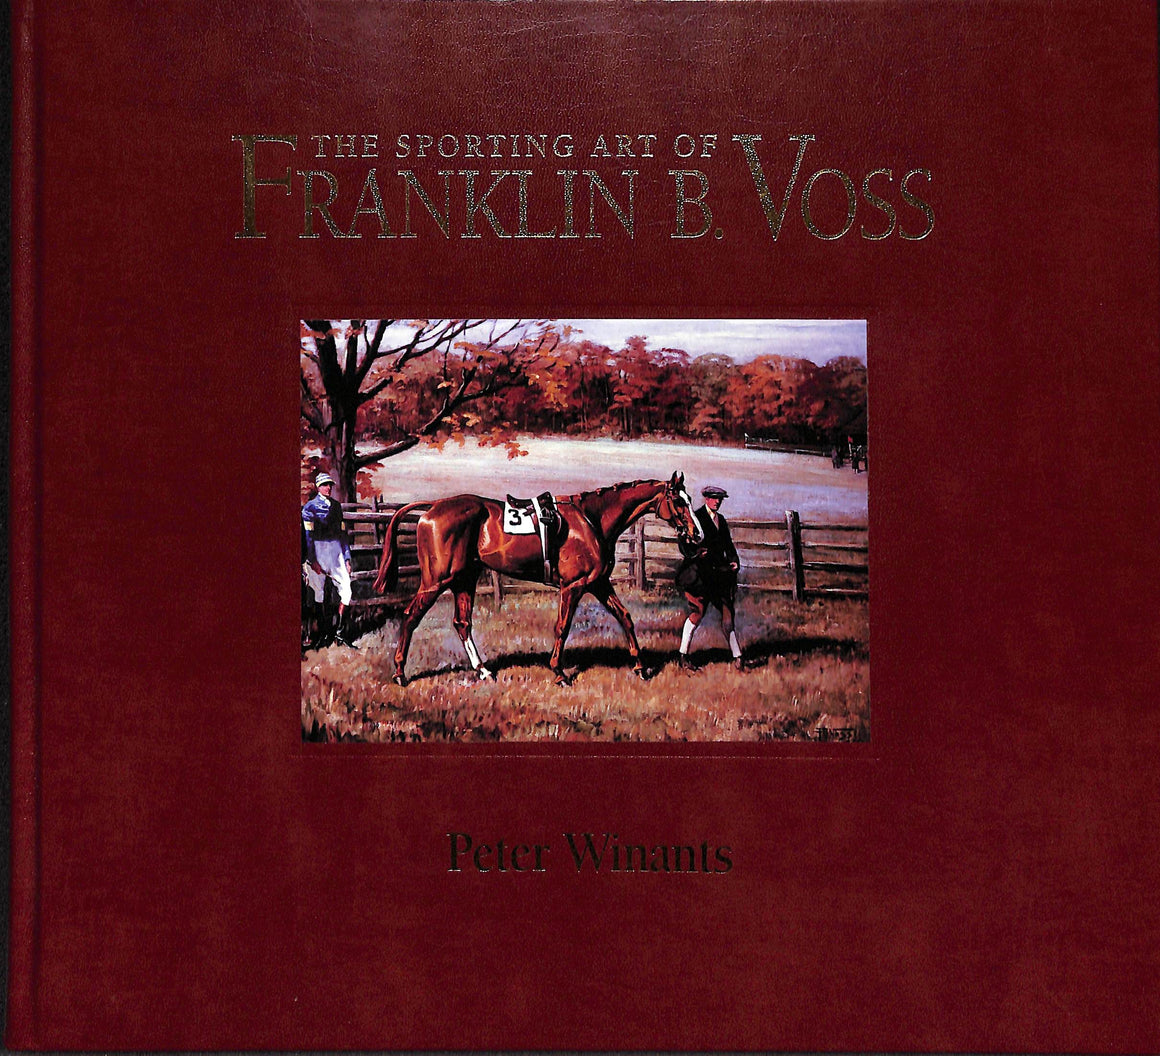 """The Sporting Art of Franklin B. Voss"" Winants, Peter"